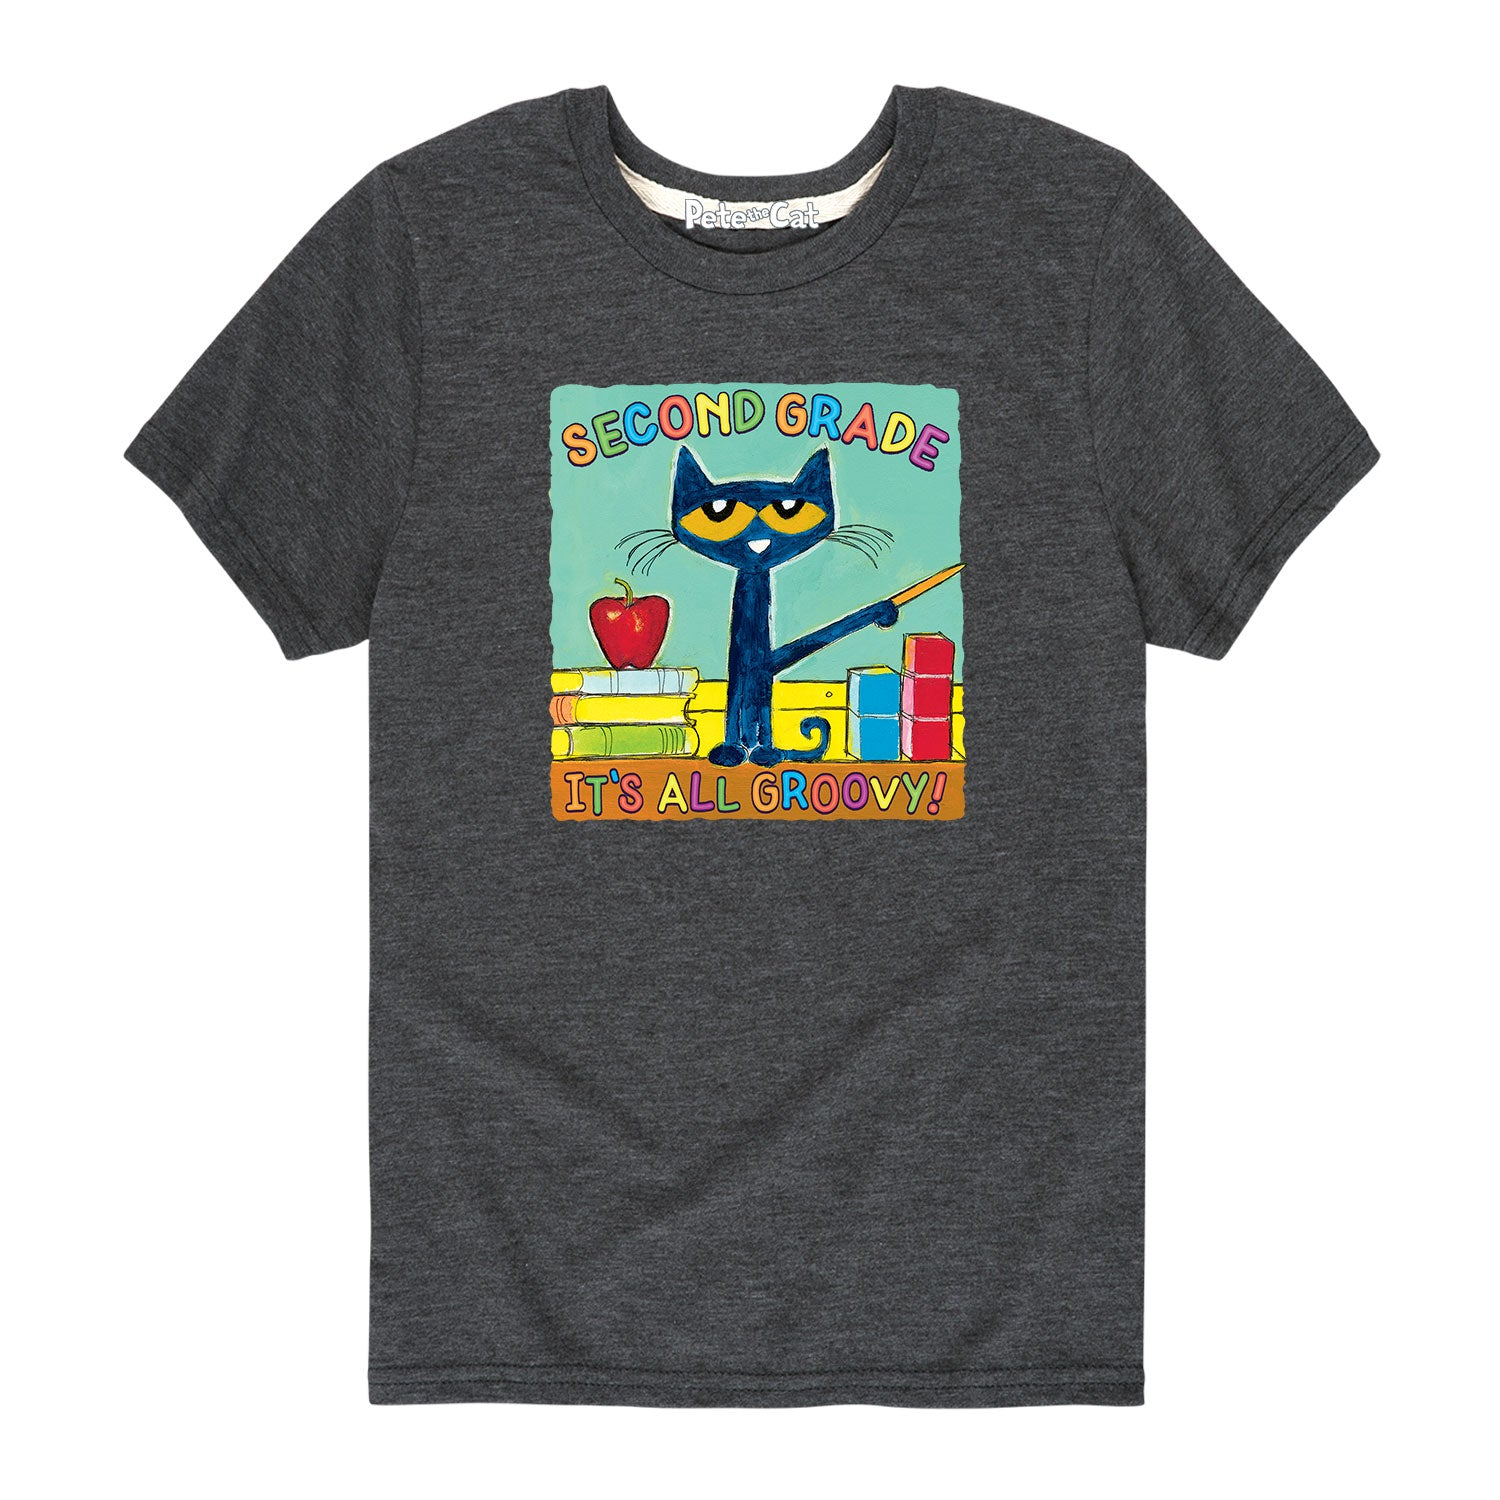 Second Grade It's All Groovy - Youth & Toddler Short Sleeve T-Shirt